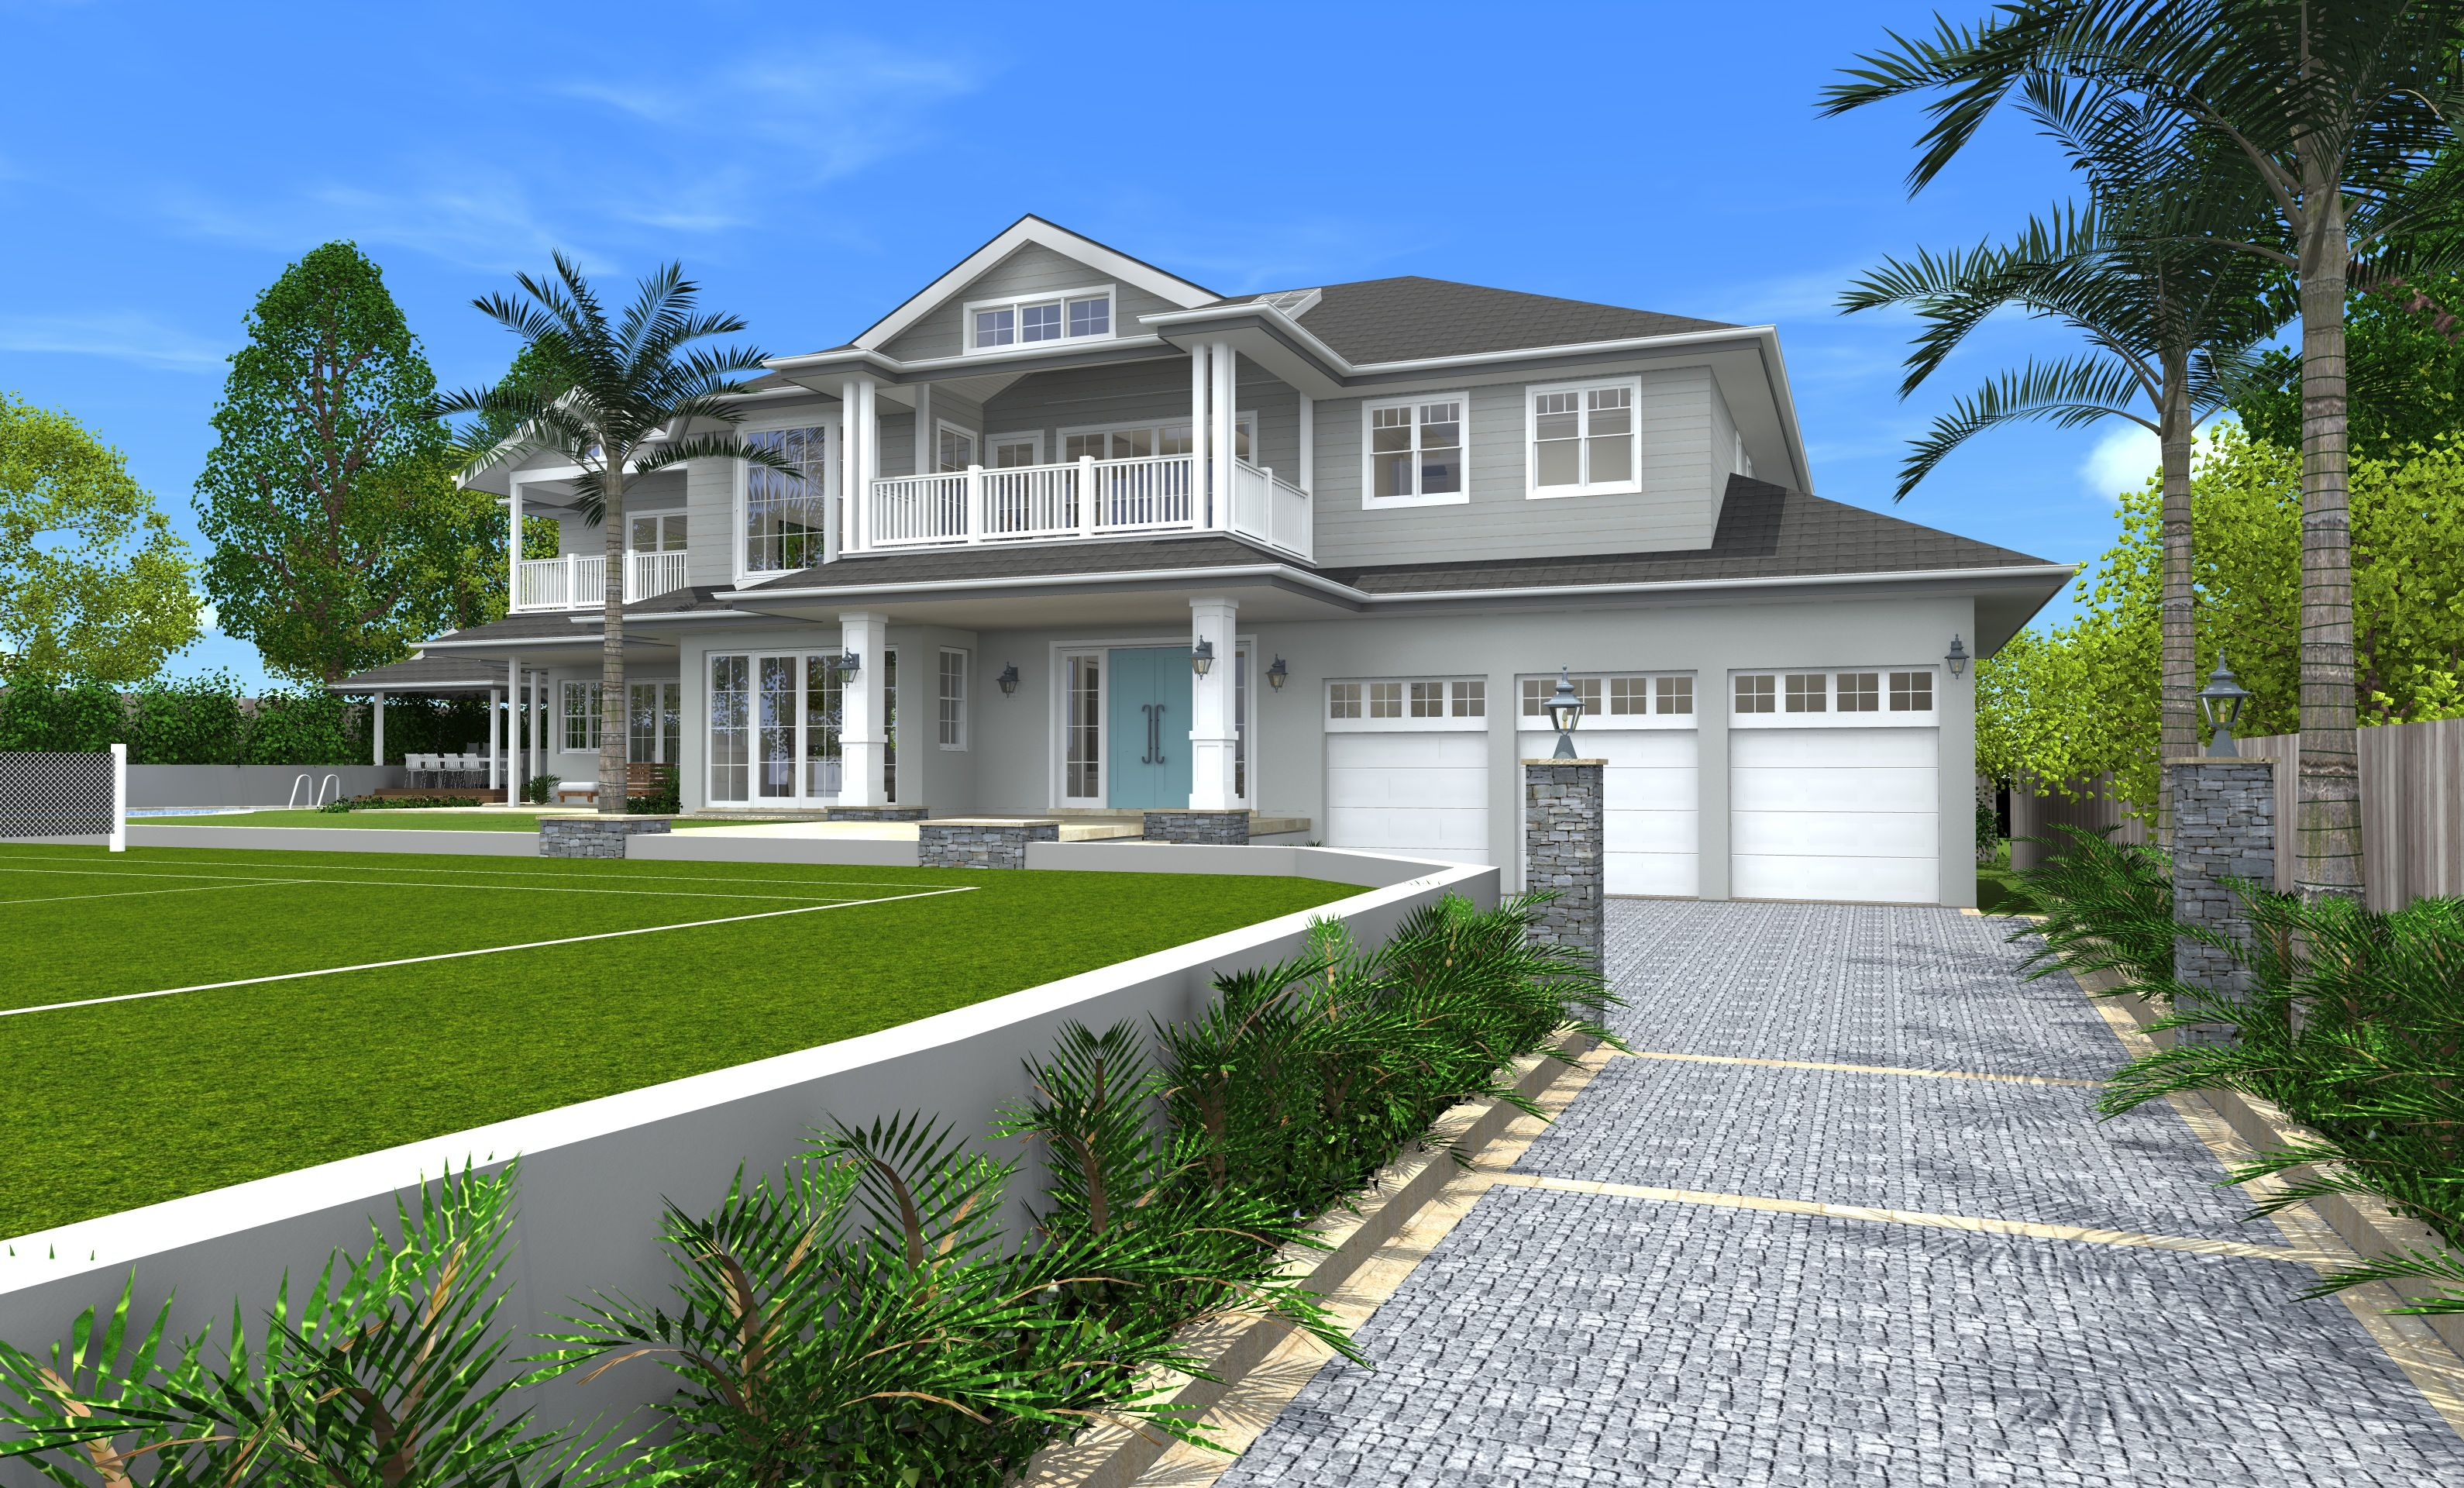 Architect design 3d concept hamptons style st ives for Australian style house plans